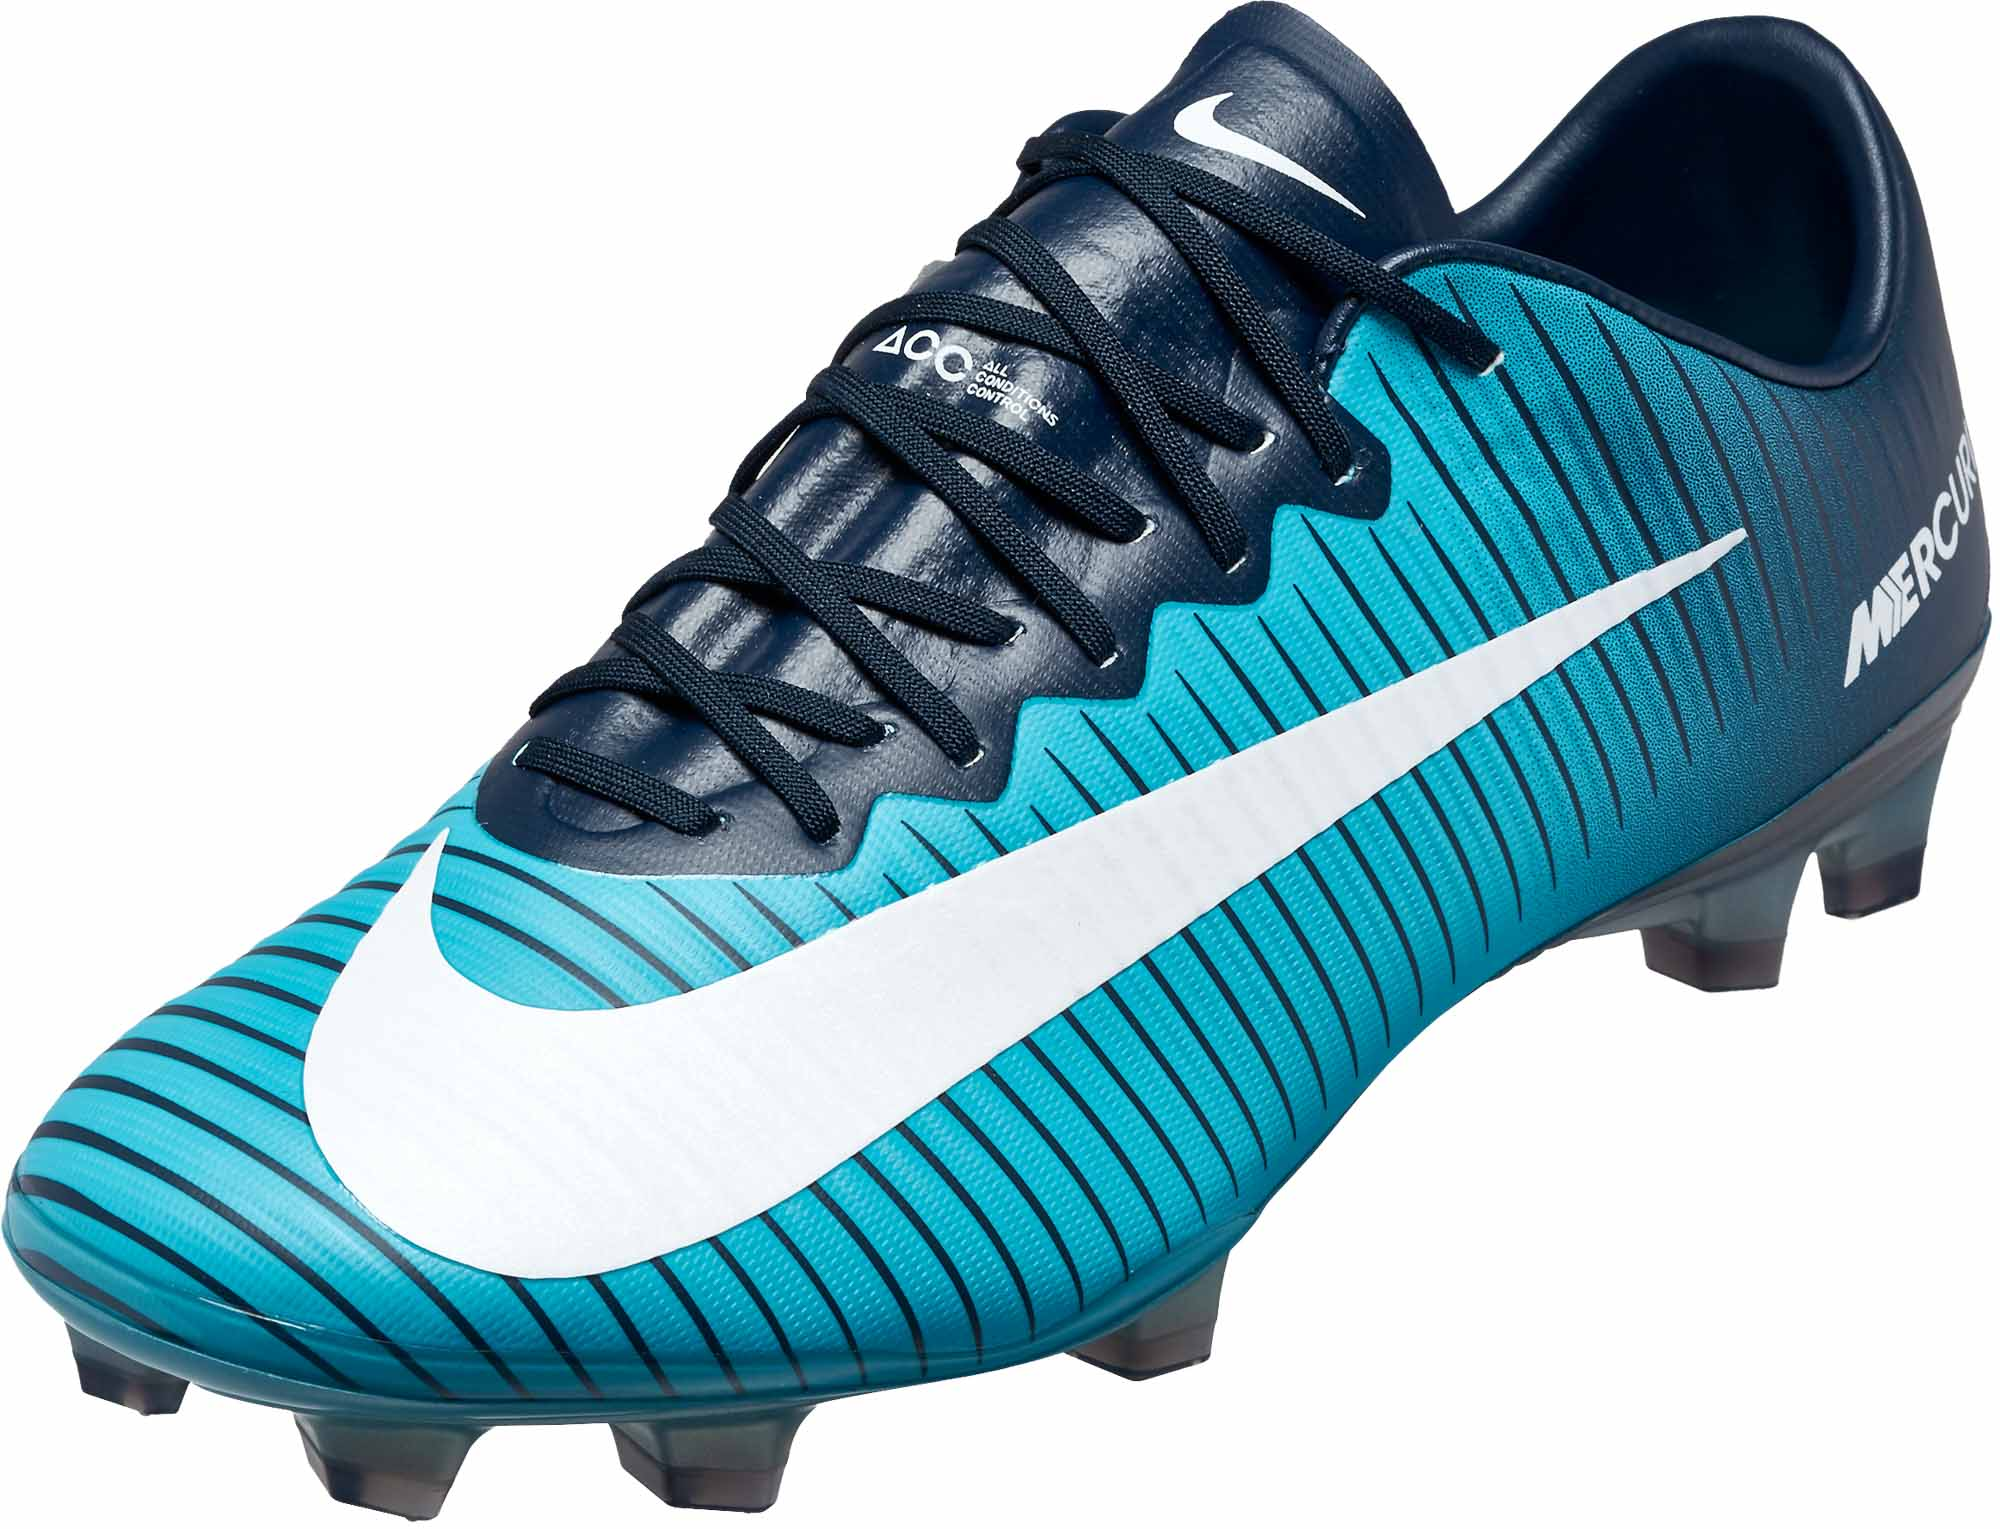 sale online stable quality discount shop Nike Mercurial Vapor XI FG - Obsidian & White - Soccer Master